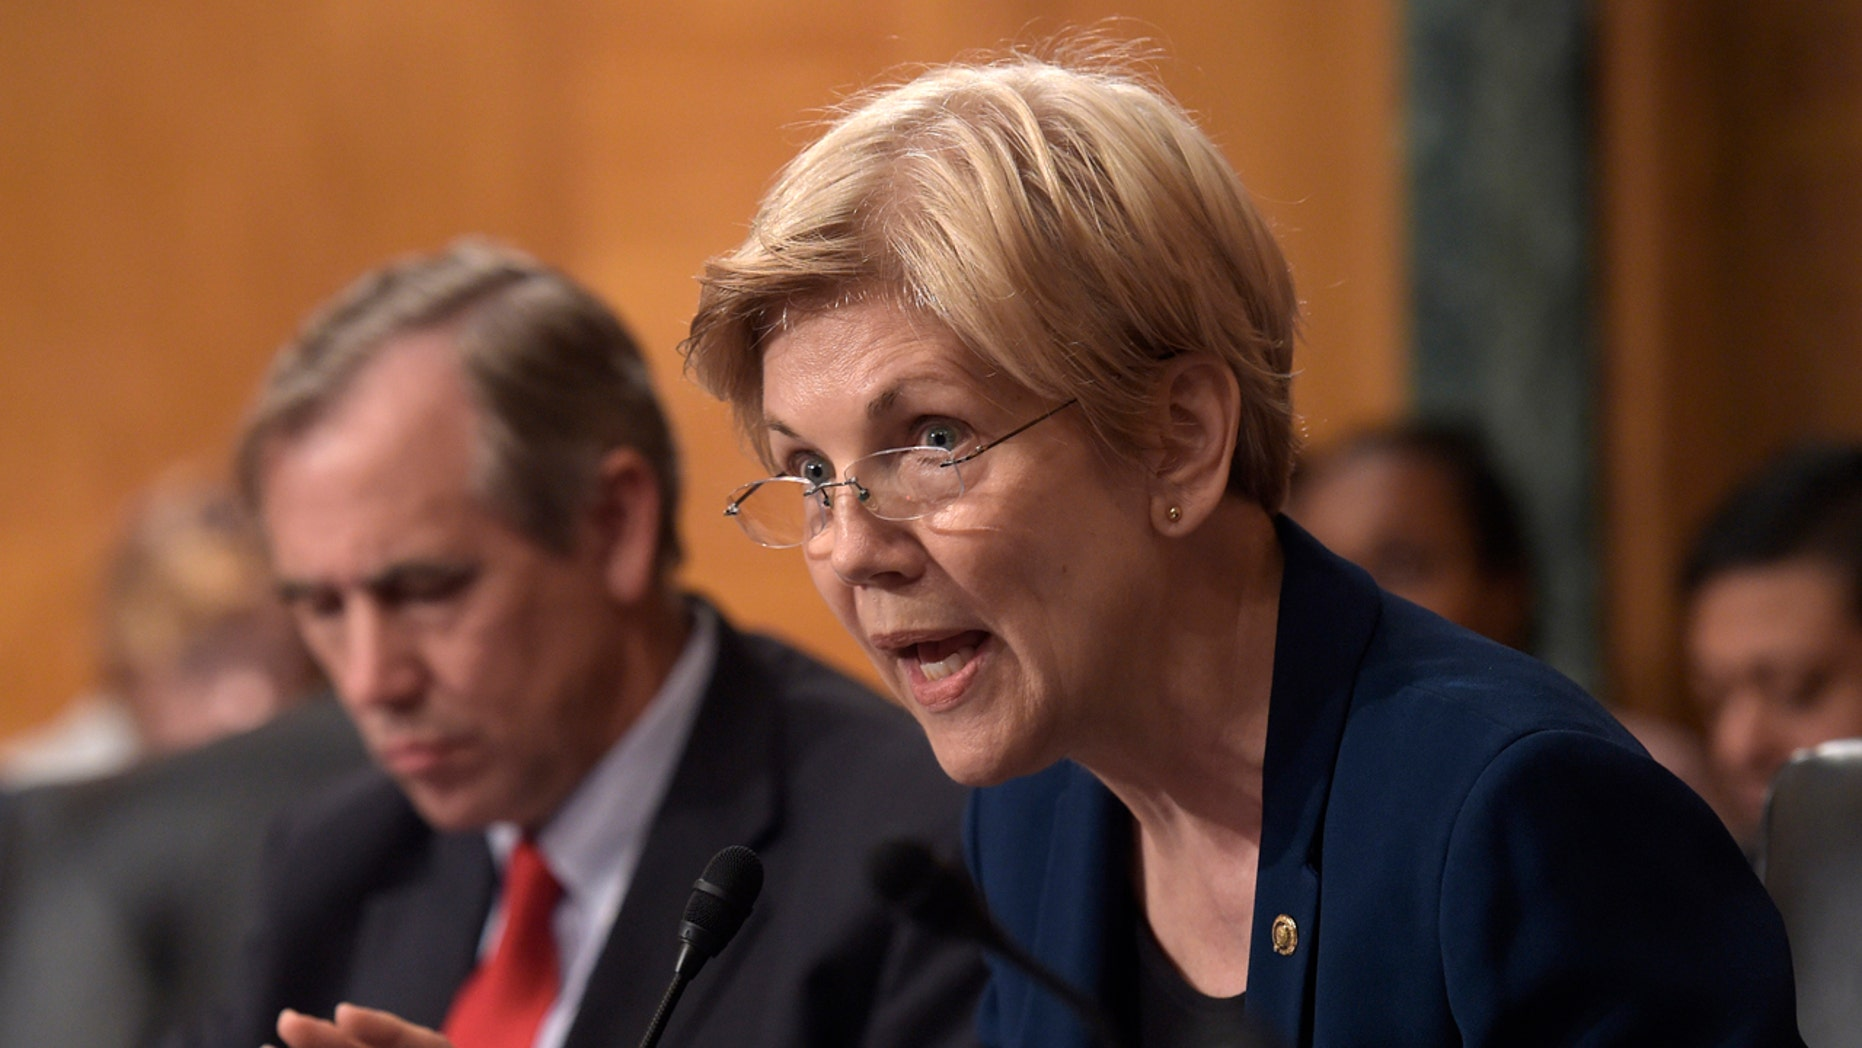 FILE - In this Sept. 20,2016 file photo, Sen. Elizabeth Warren, D-Mass. speaks on Capitol Hill in Washington. Warren accused the Education Department on Thursday, Sept. 29, 2016, of moving forward with debt collection against nearly 80,000 former students of Corinthian Colleges, despite federal and state findings that the now-defunct for-profit chain defrauded students. (AP Photo/Susan Walsh, File)